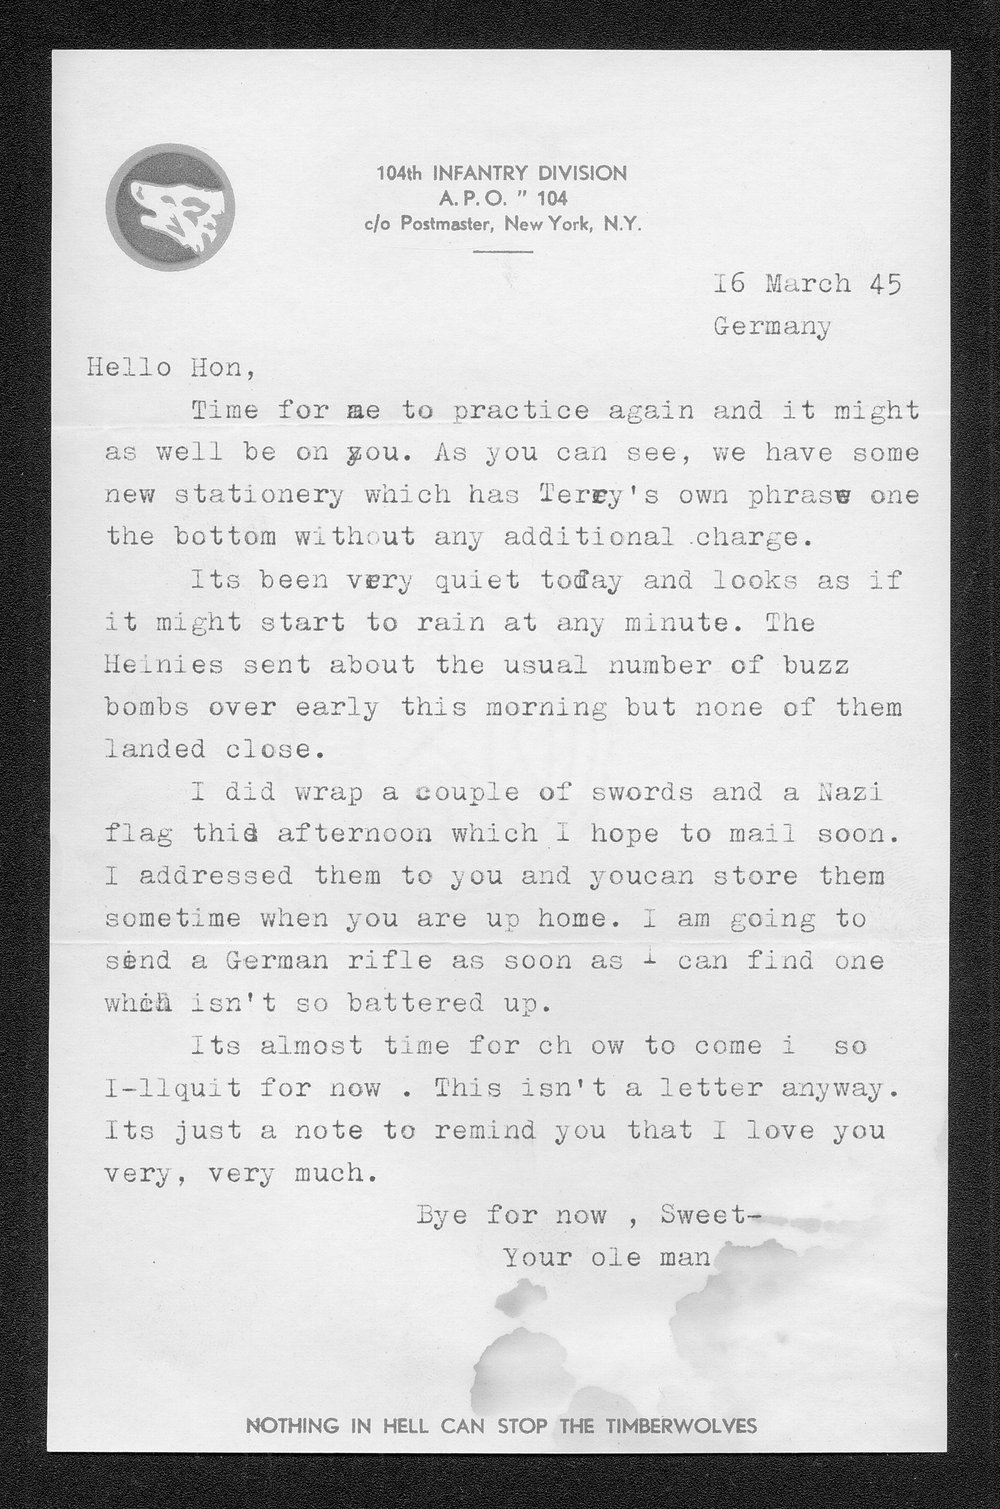 Letters from Hilton Parris Mize to his wife Irene Rosenberger Mize - 2